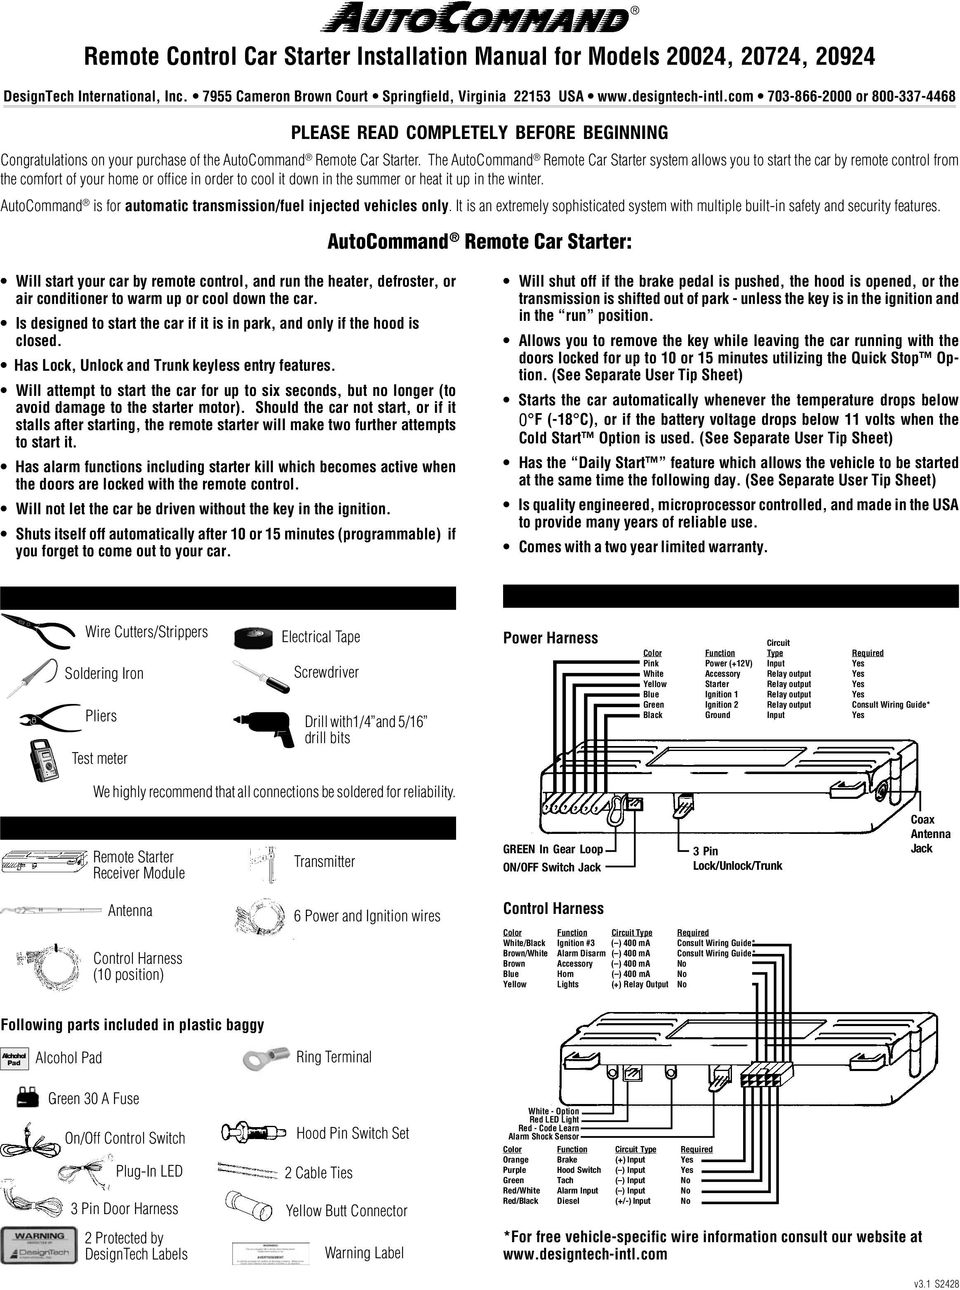 [SCHEMATICS_48DE]  Designtech Remote Starter Wiring Diagram | Online Wiring Diagram | Design Tech Remote Starter Wiring Diagram |  | Wiring Diagram